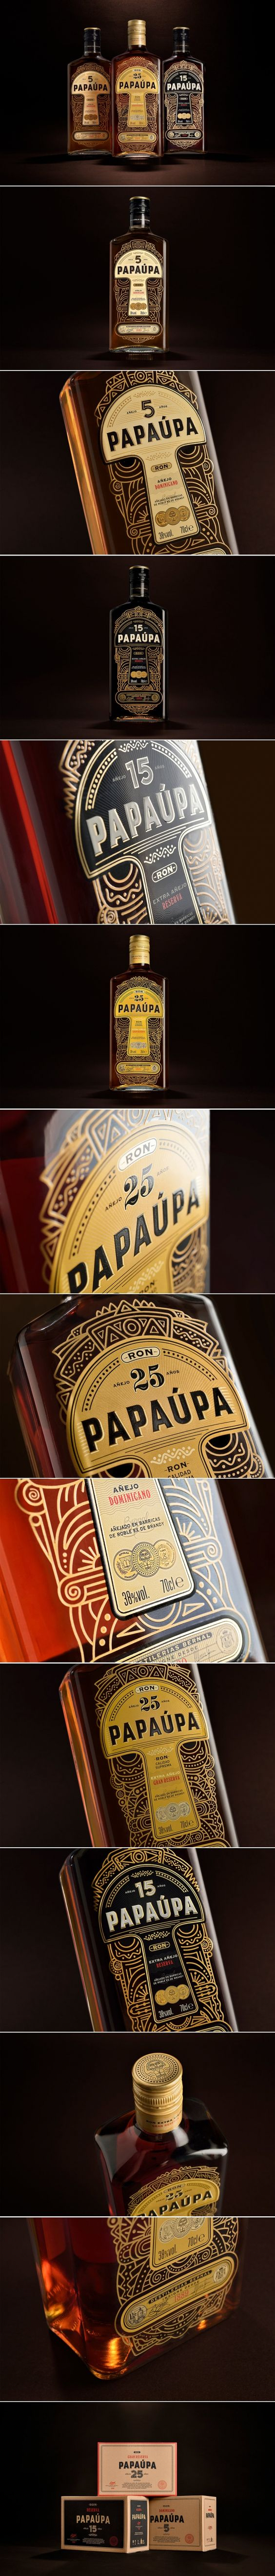 Check Out The Mesmerizing Packaging For This Historical Rum